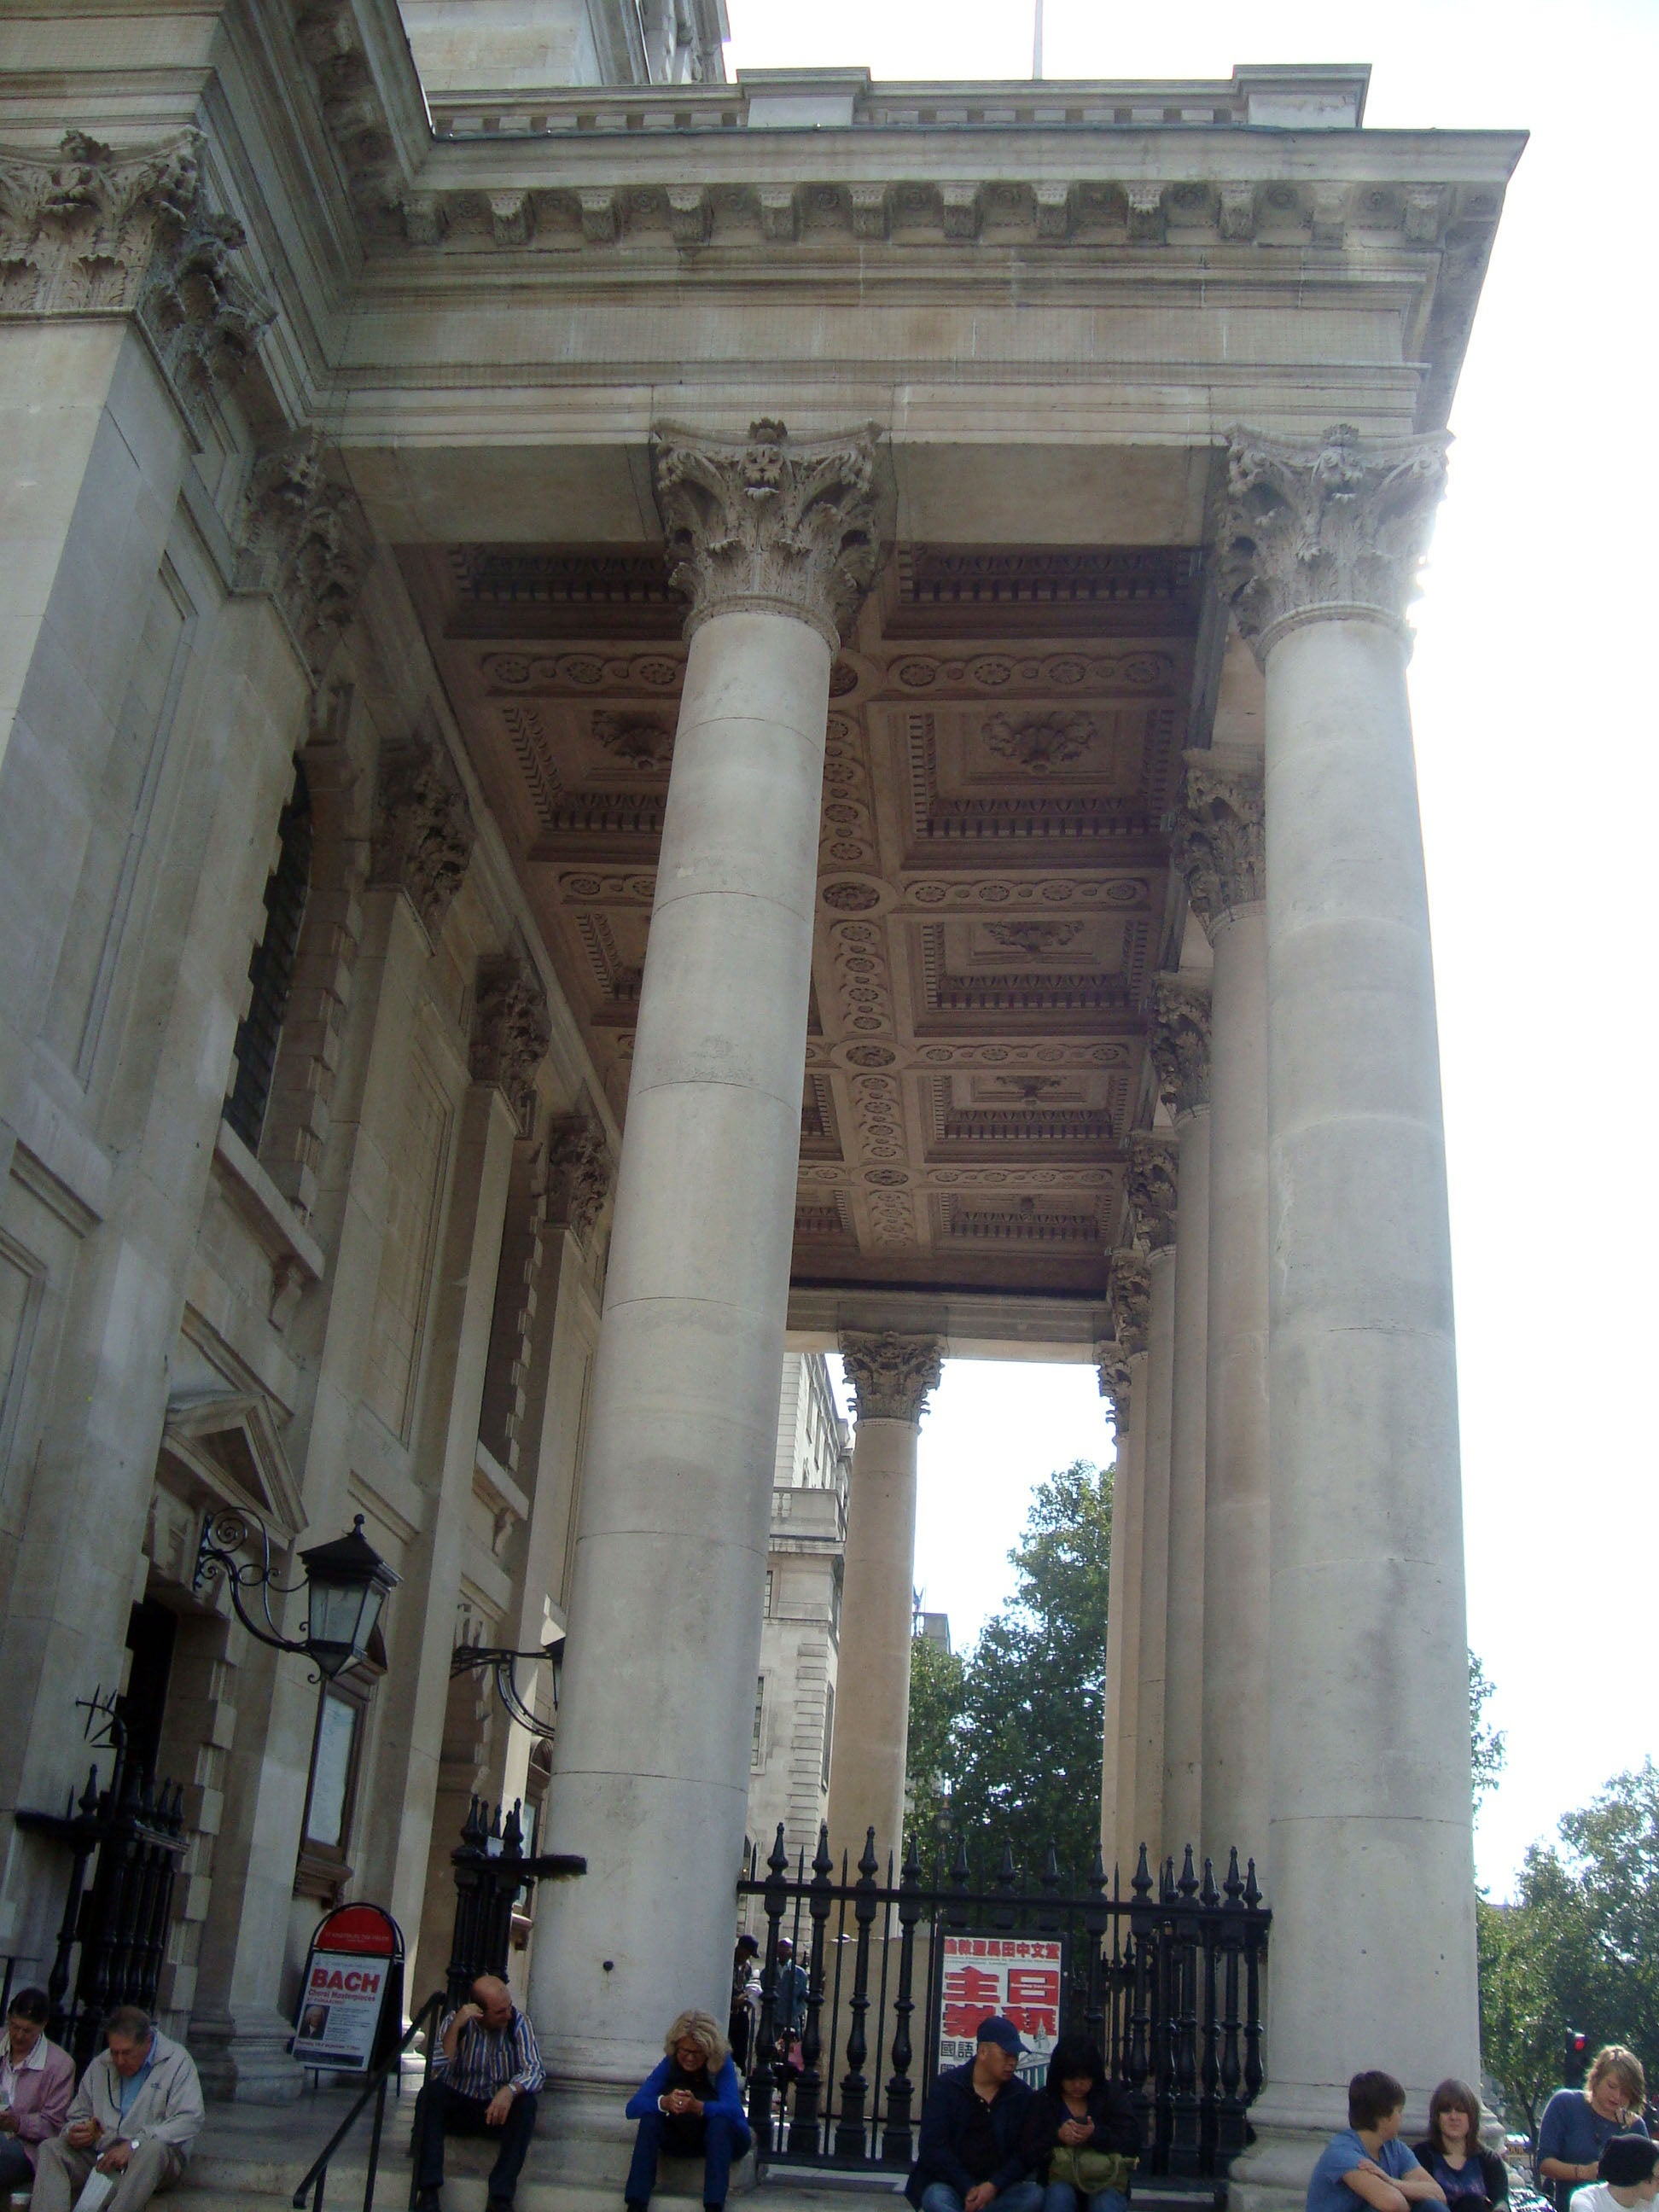 Templo romano en St Martin-in-the-Fields